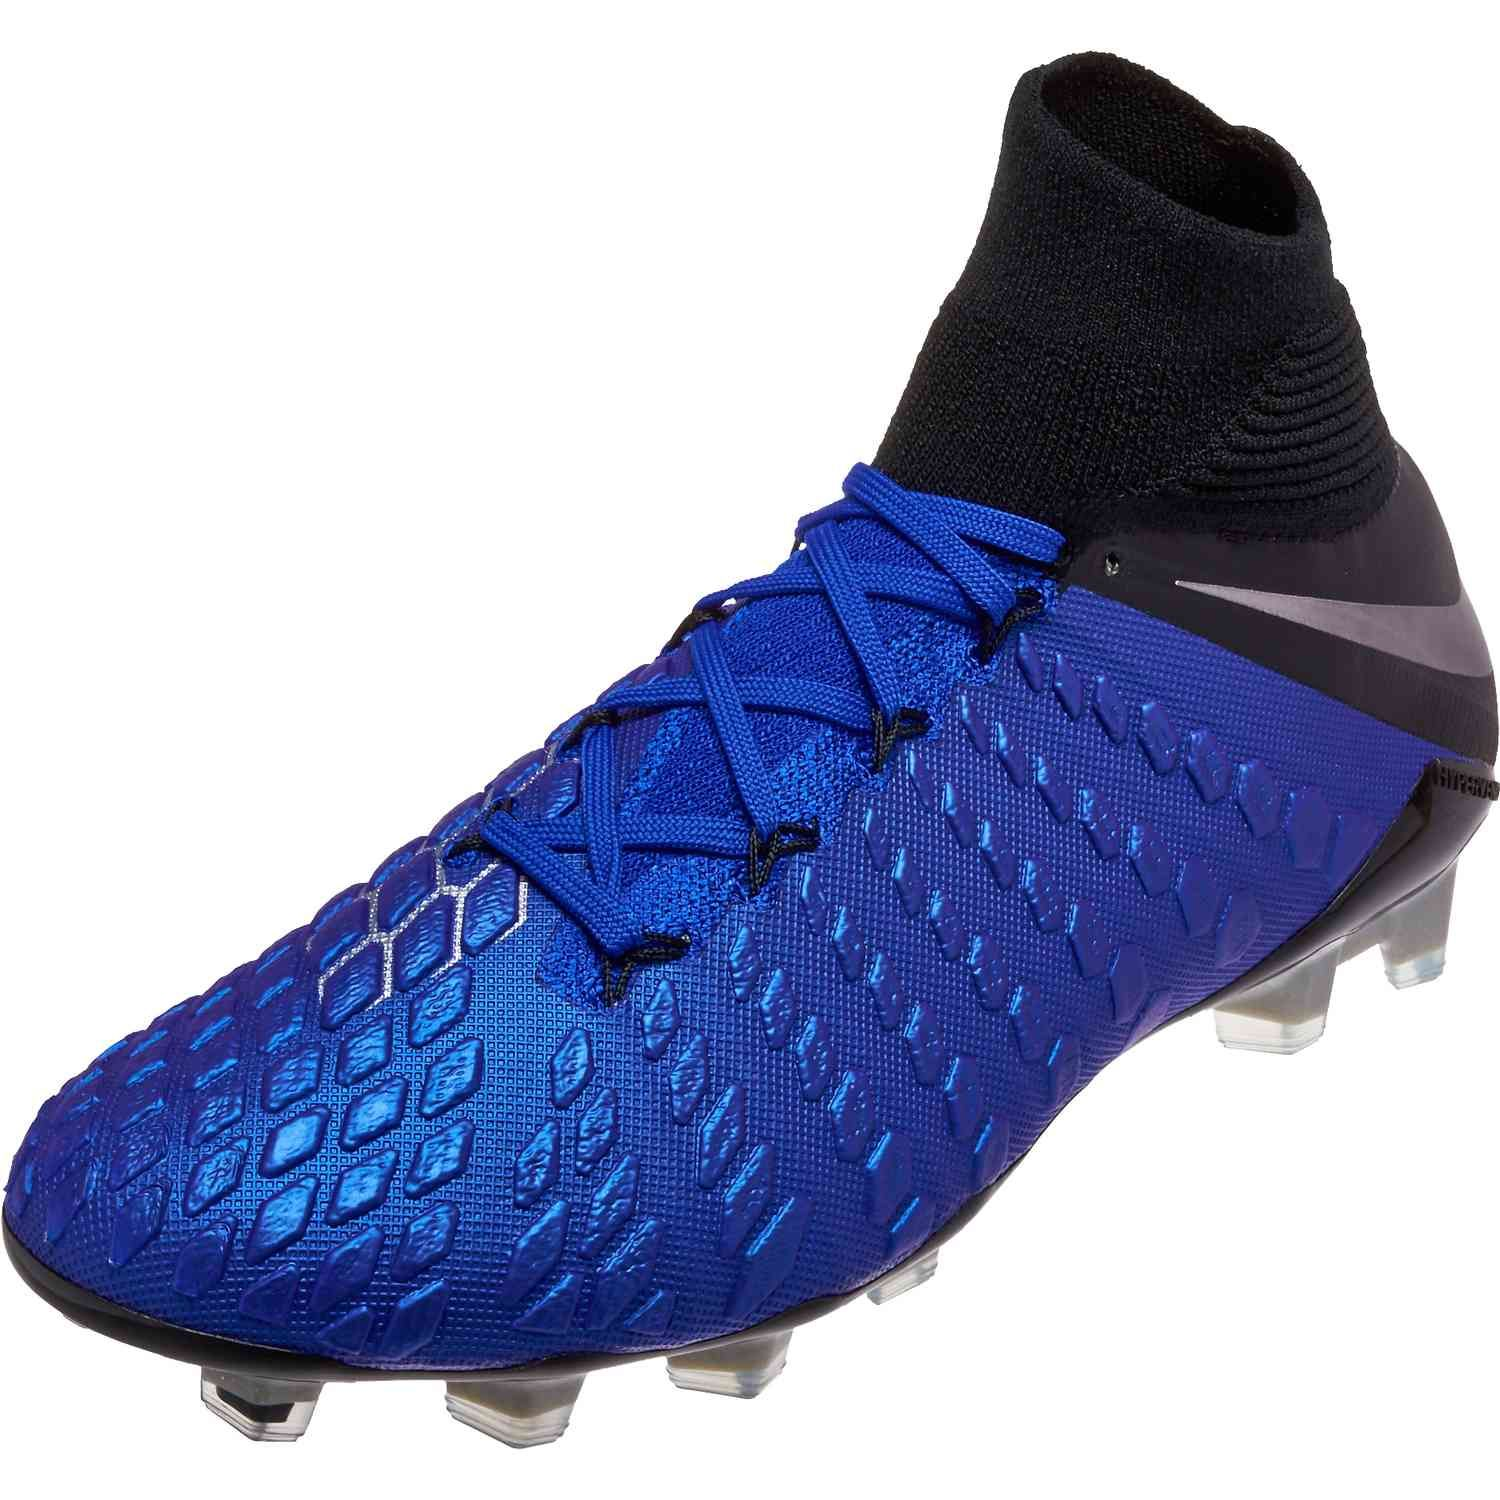 349169cc317f The Always Forward pack (Wave 1) Hypervenom Phantom DF is at SoccerPro  right now!